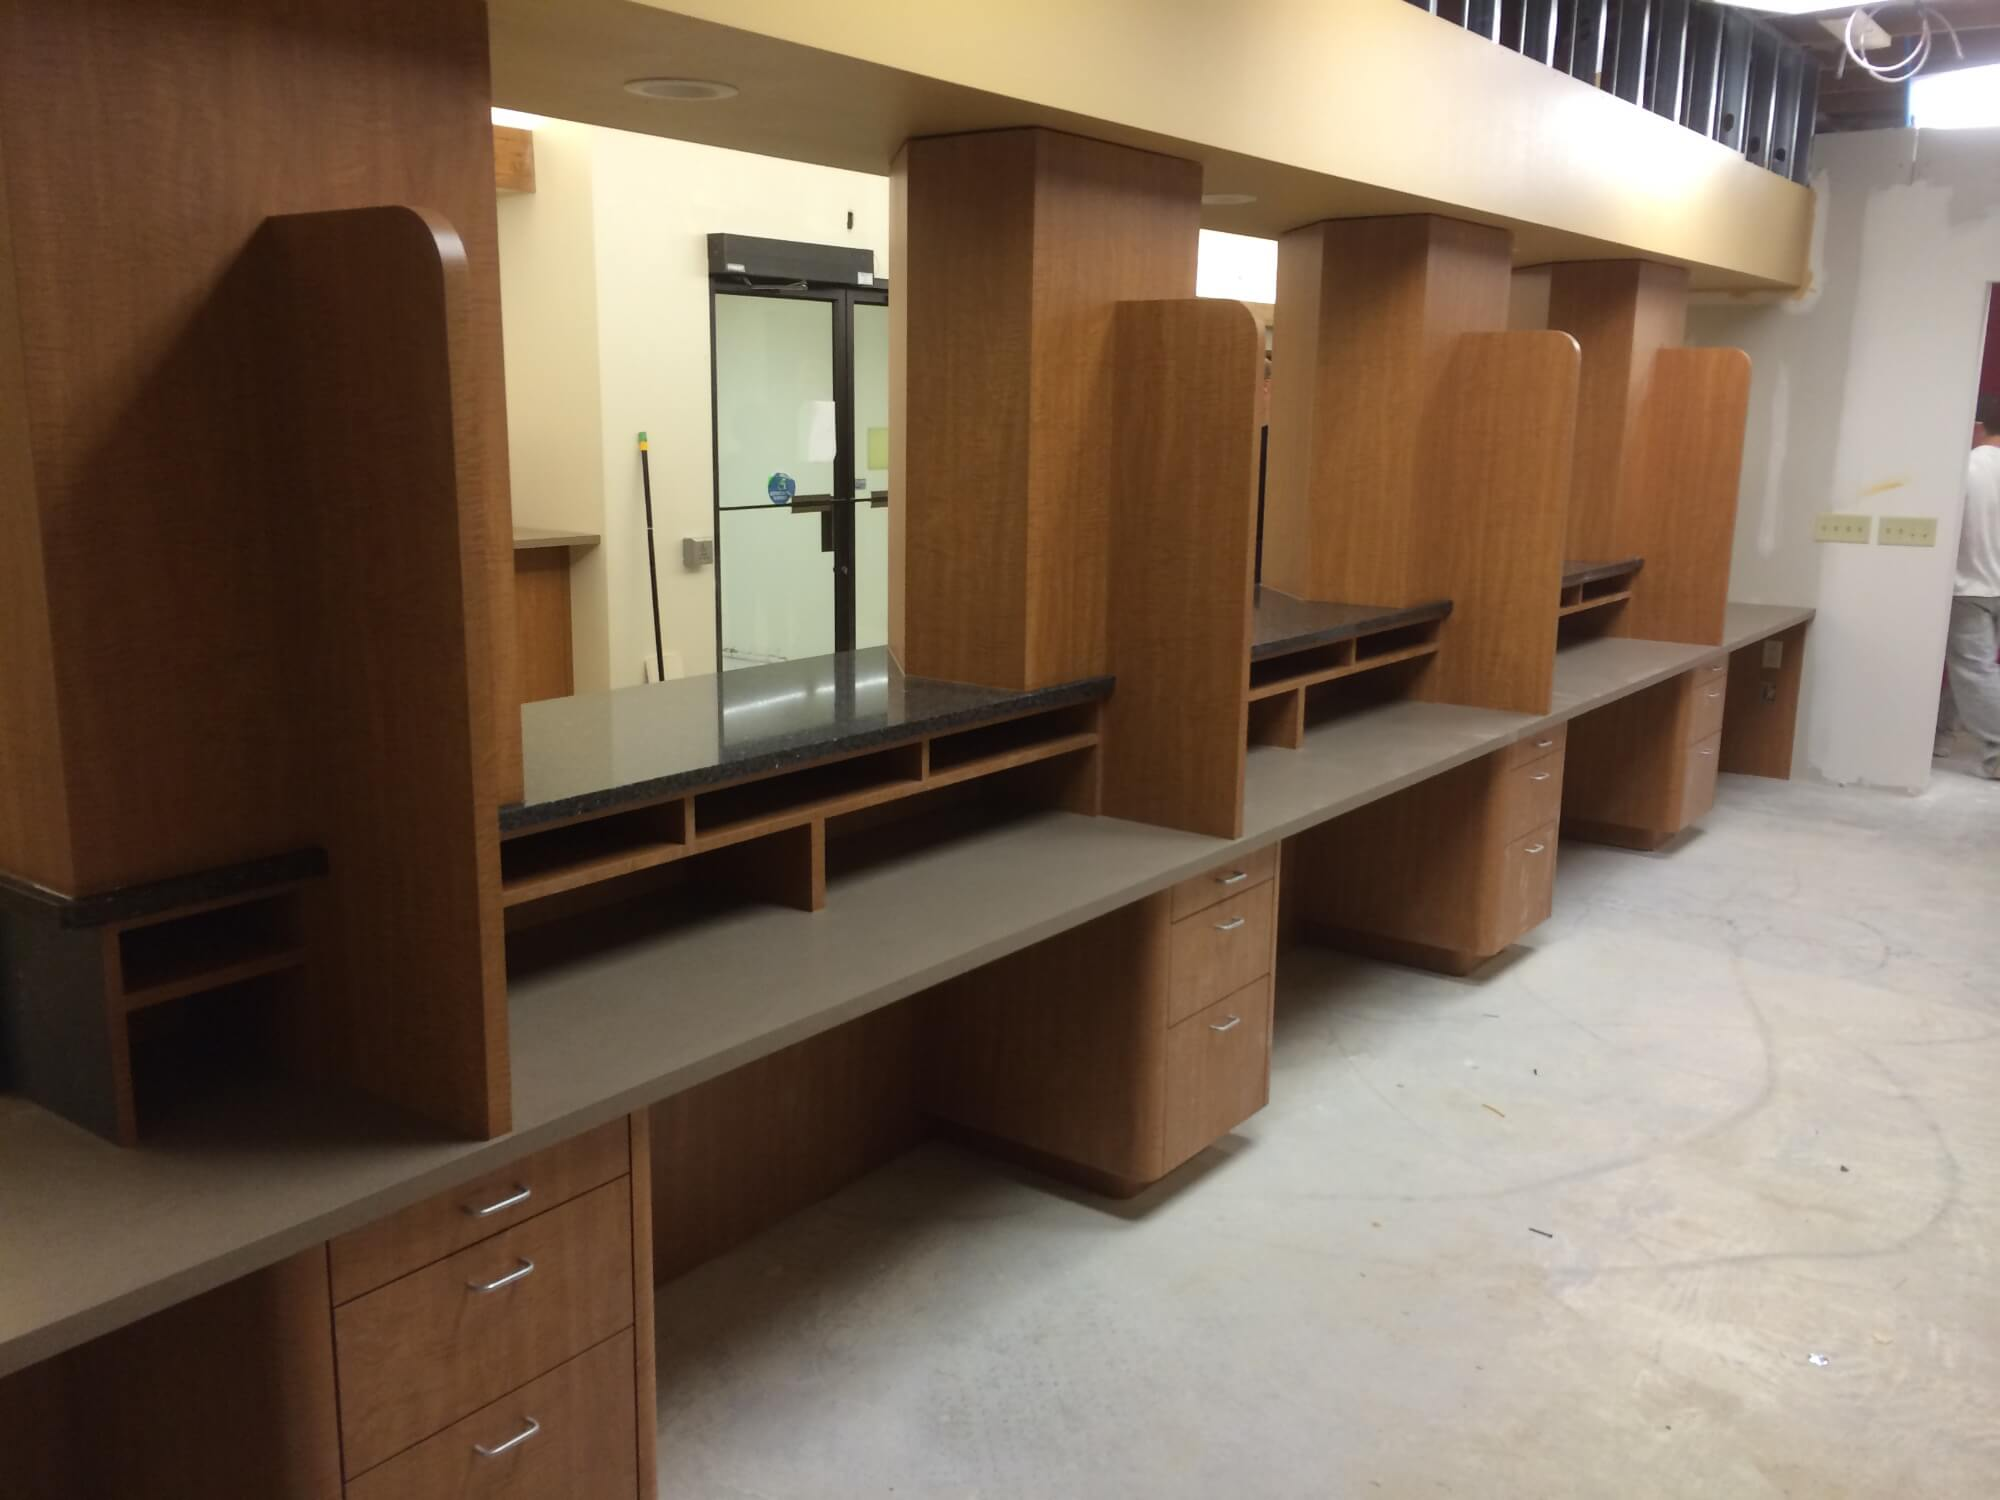 Waiting Area Cabinets